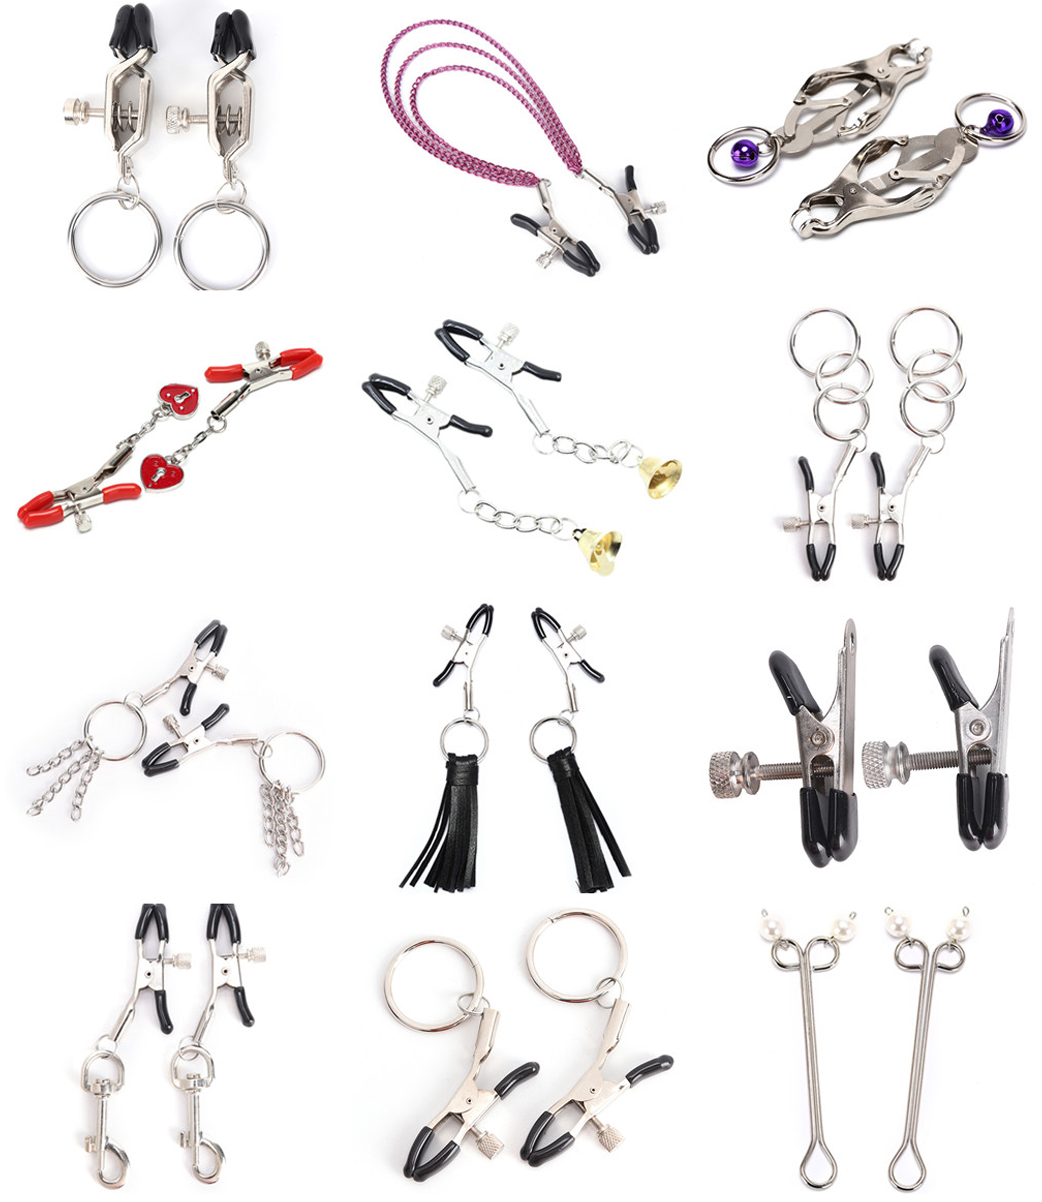 Adult Games Just Female Nipple Breast Clamps With Chain Clips Stimulator Flirt Breast Nipple Clips Bondage Bdsm Slave Women Sex Toys